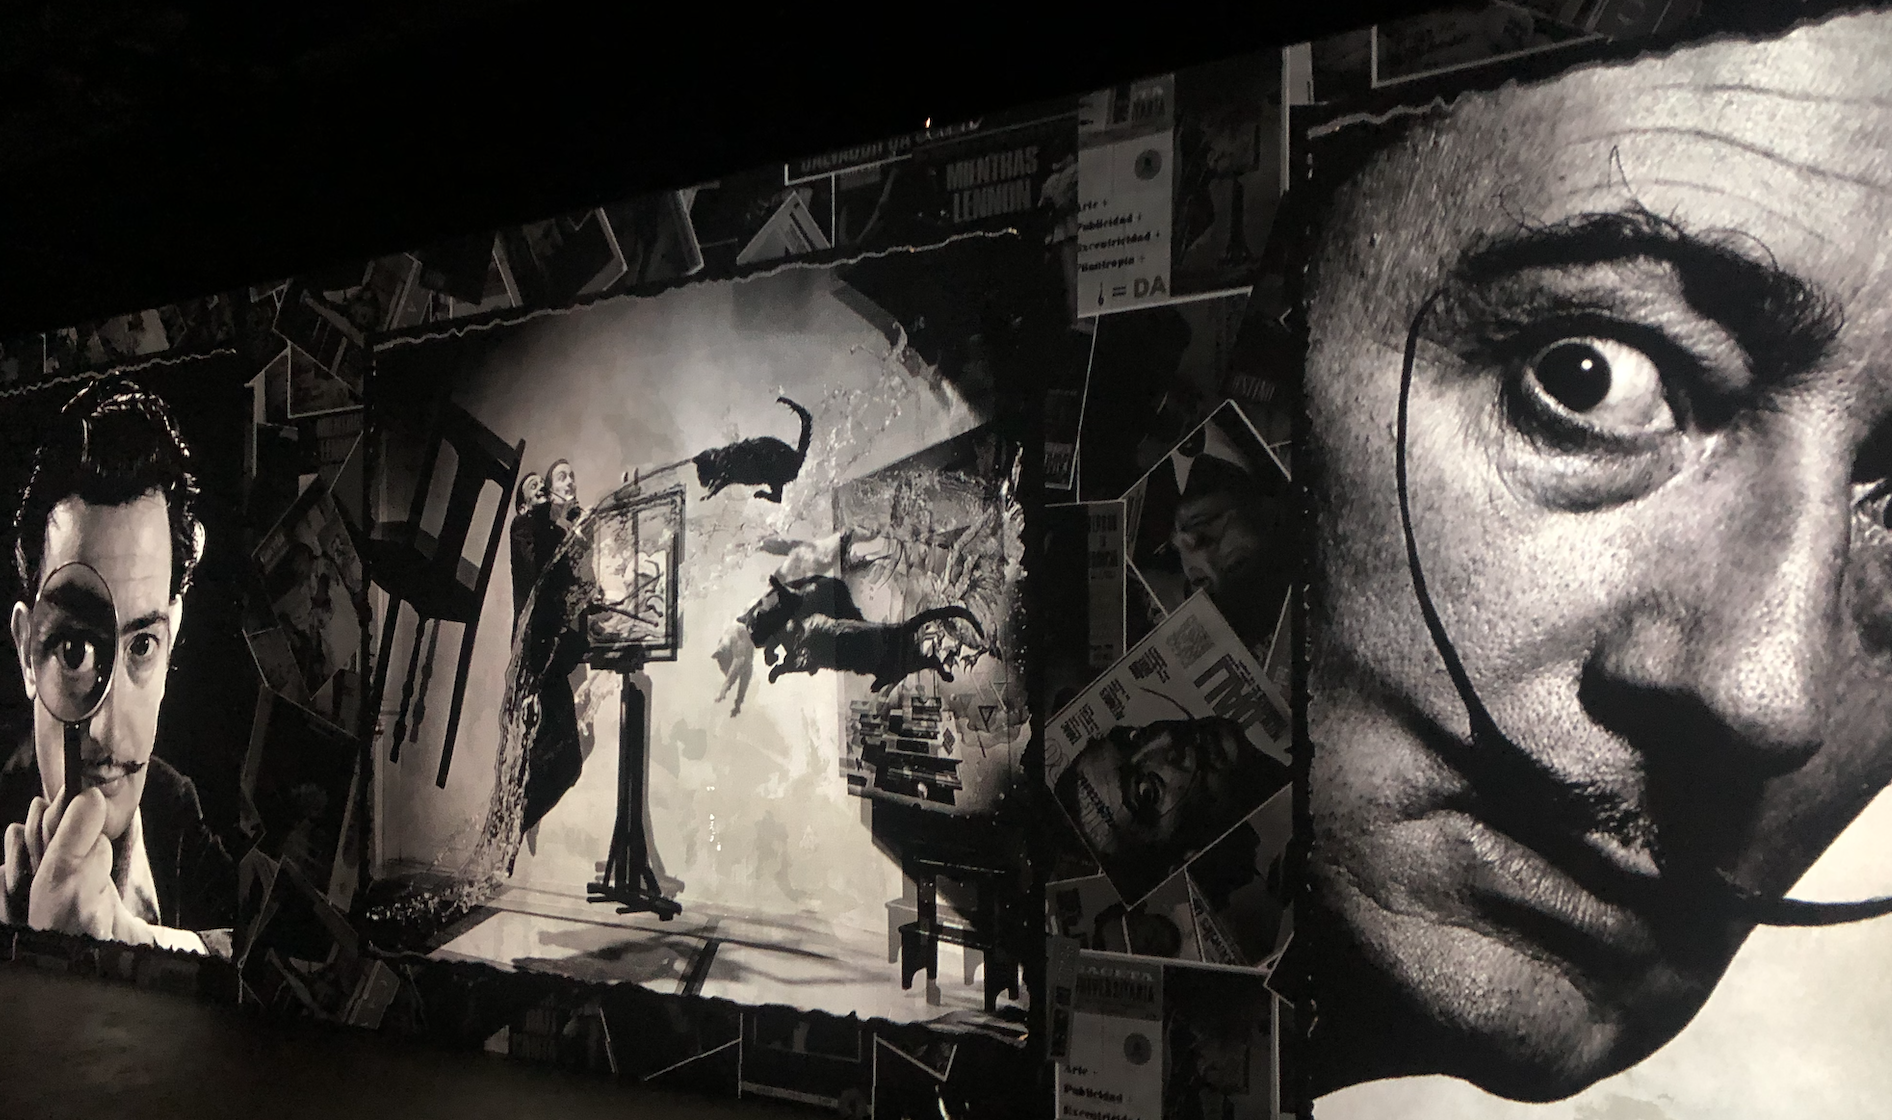 Multiple pictures of Dali